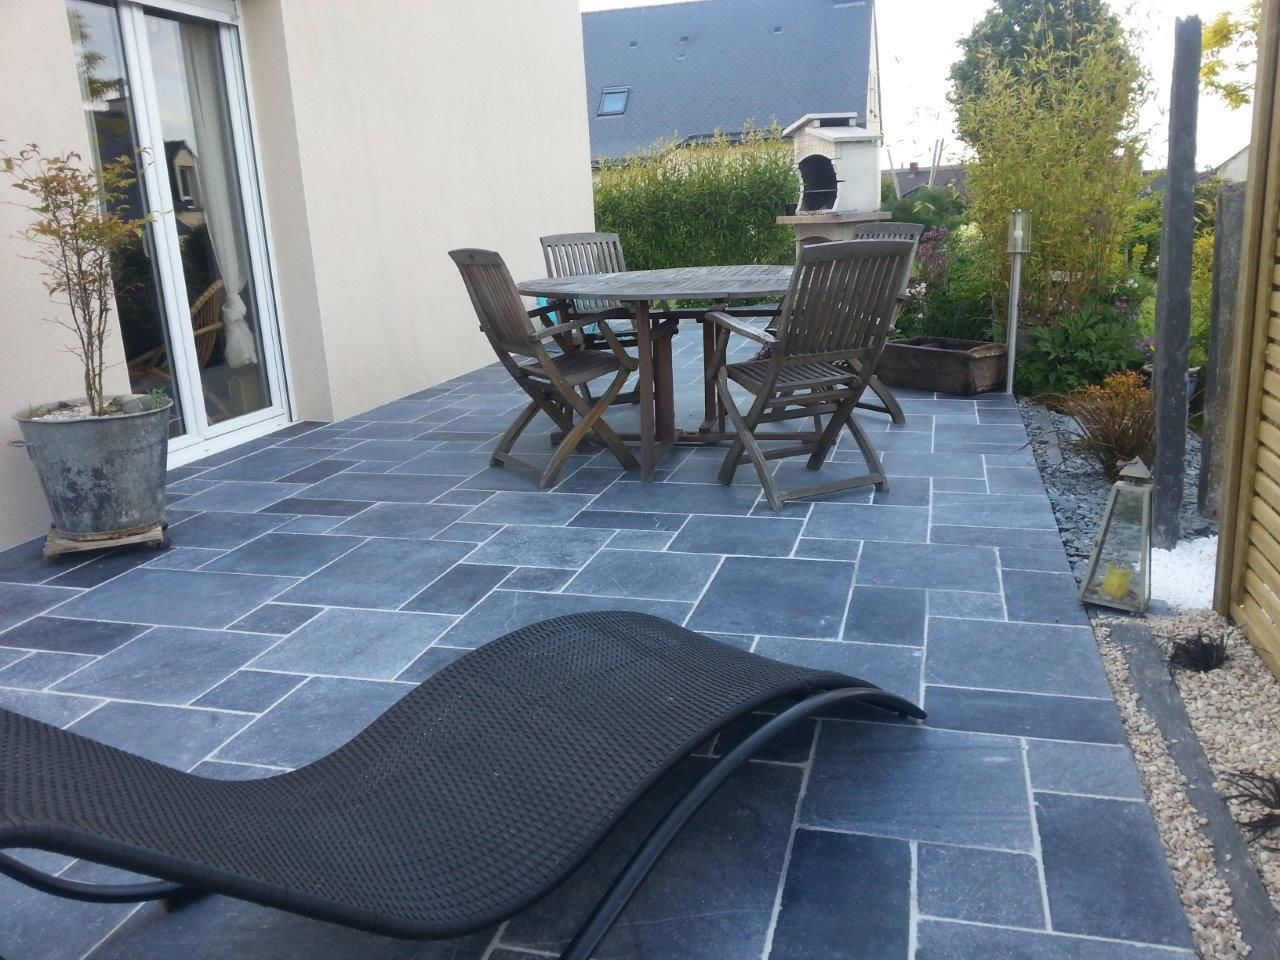 Terrasse pierre bleu en opus romain pierre bleue for Carrelage opus romain